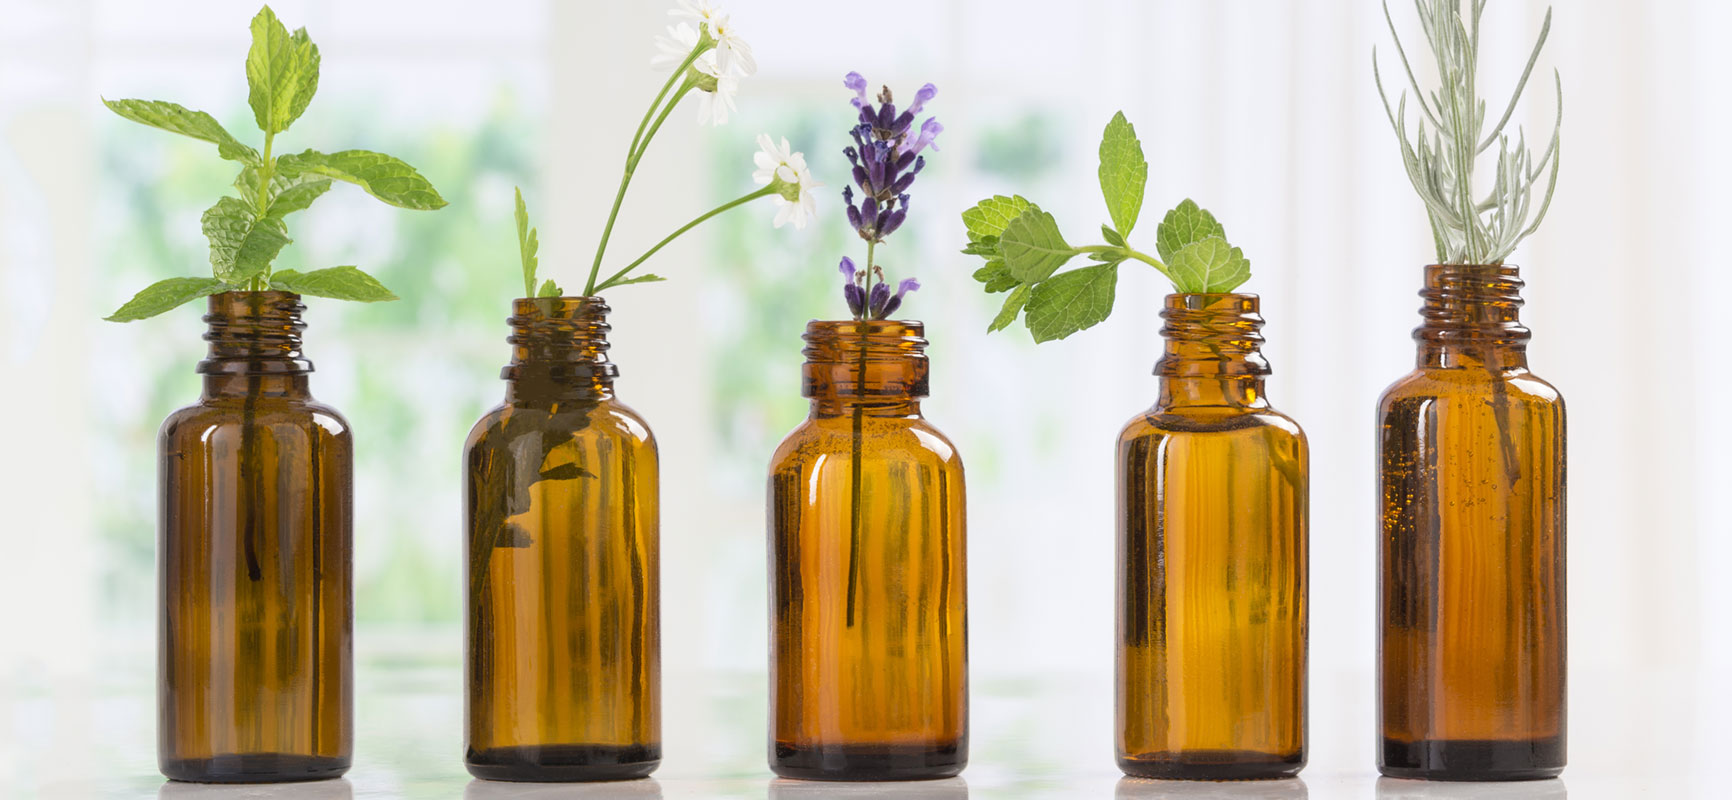 Oil bottles with a selection of botanicals displayed in bottle